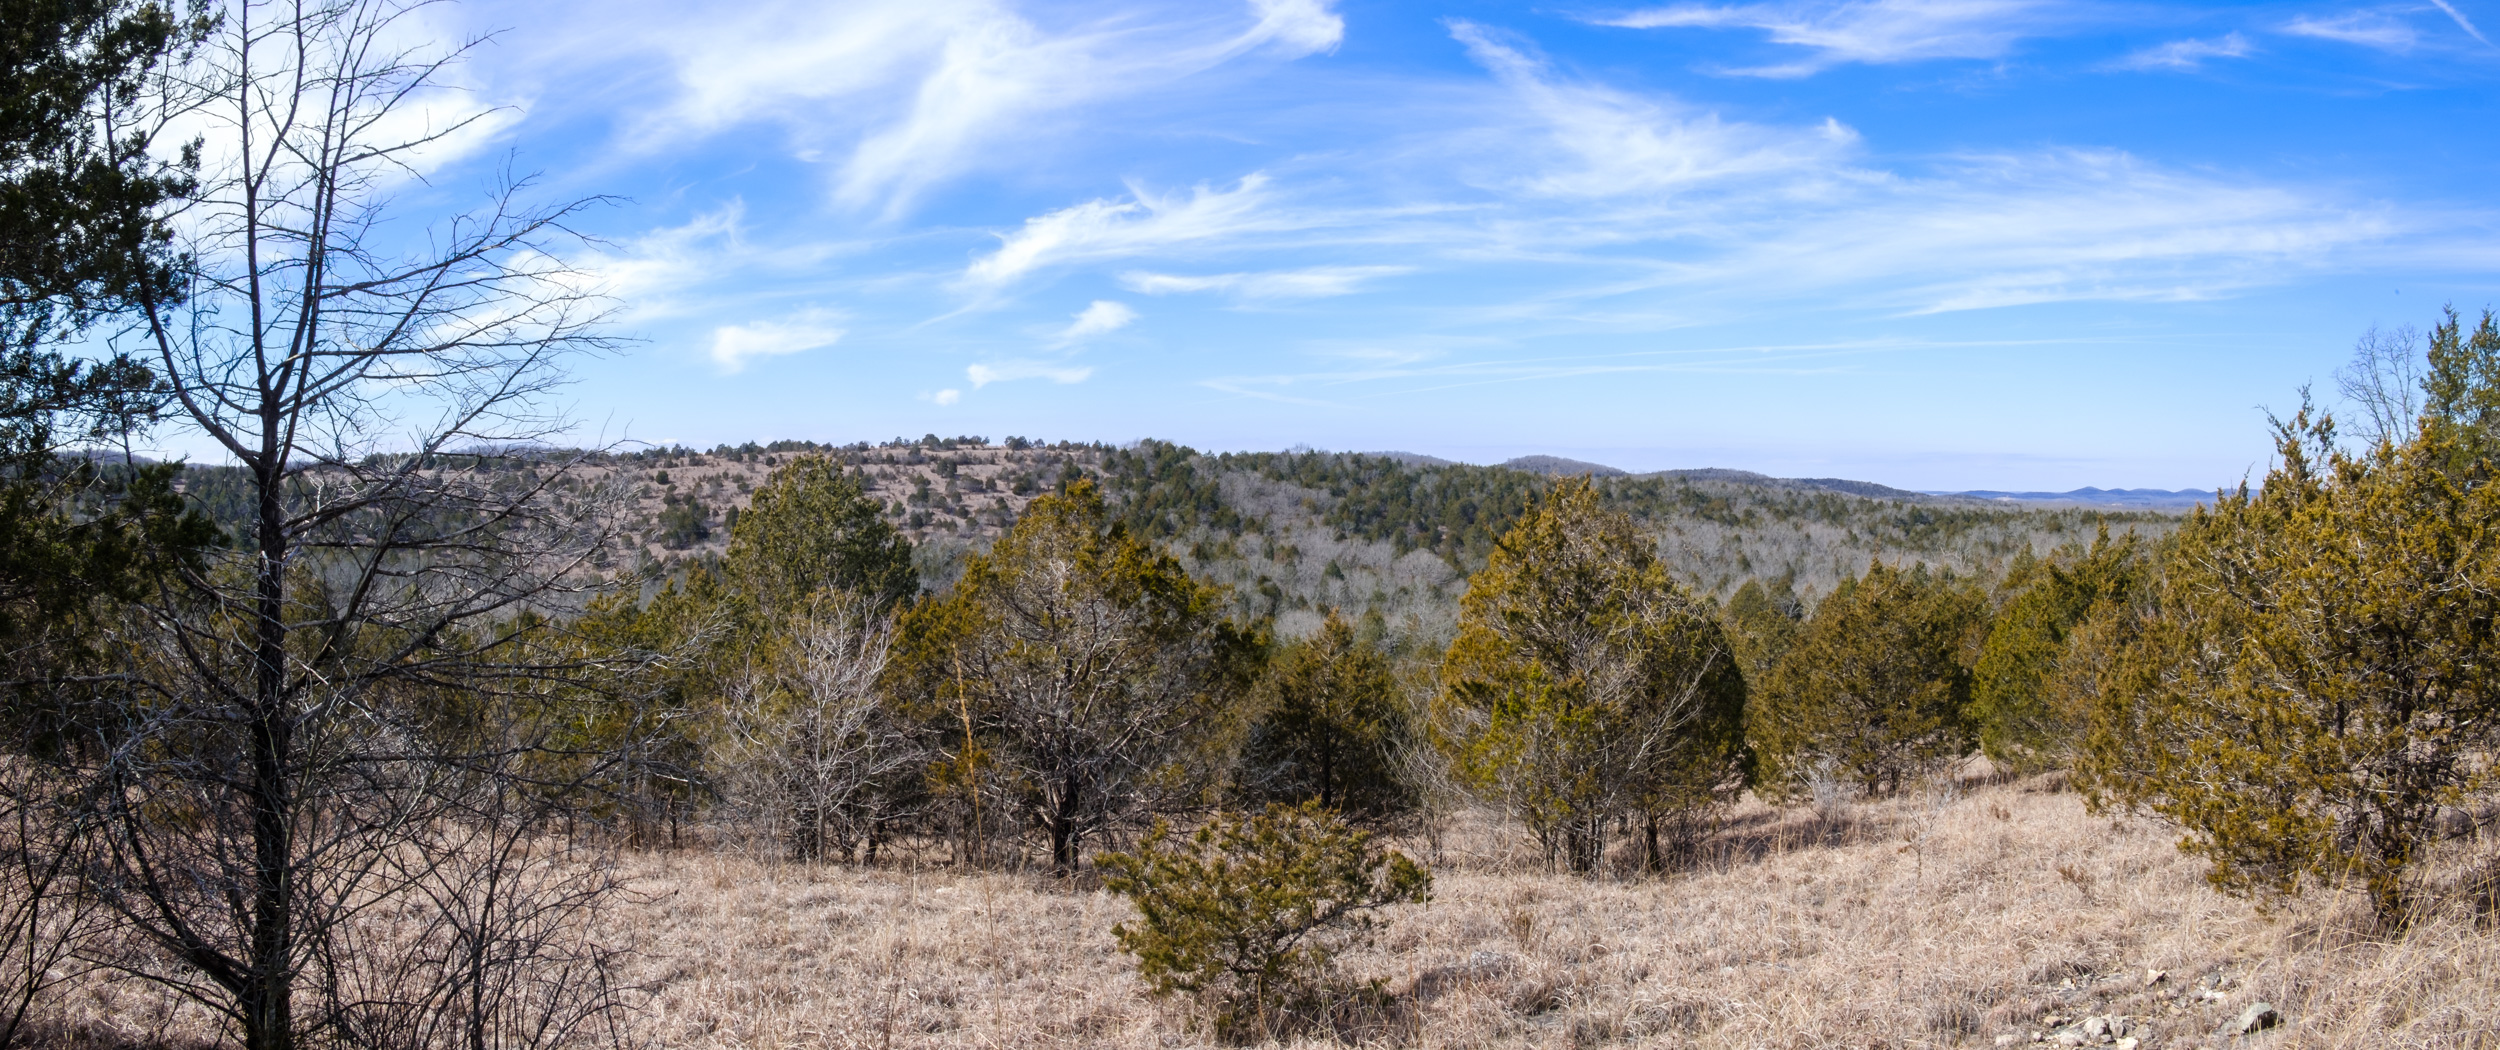 View to the northwest from the eastern side of the Pees Hollow Trail at Hercules Glades Wilderness.